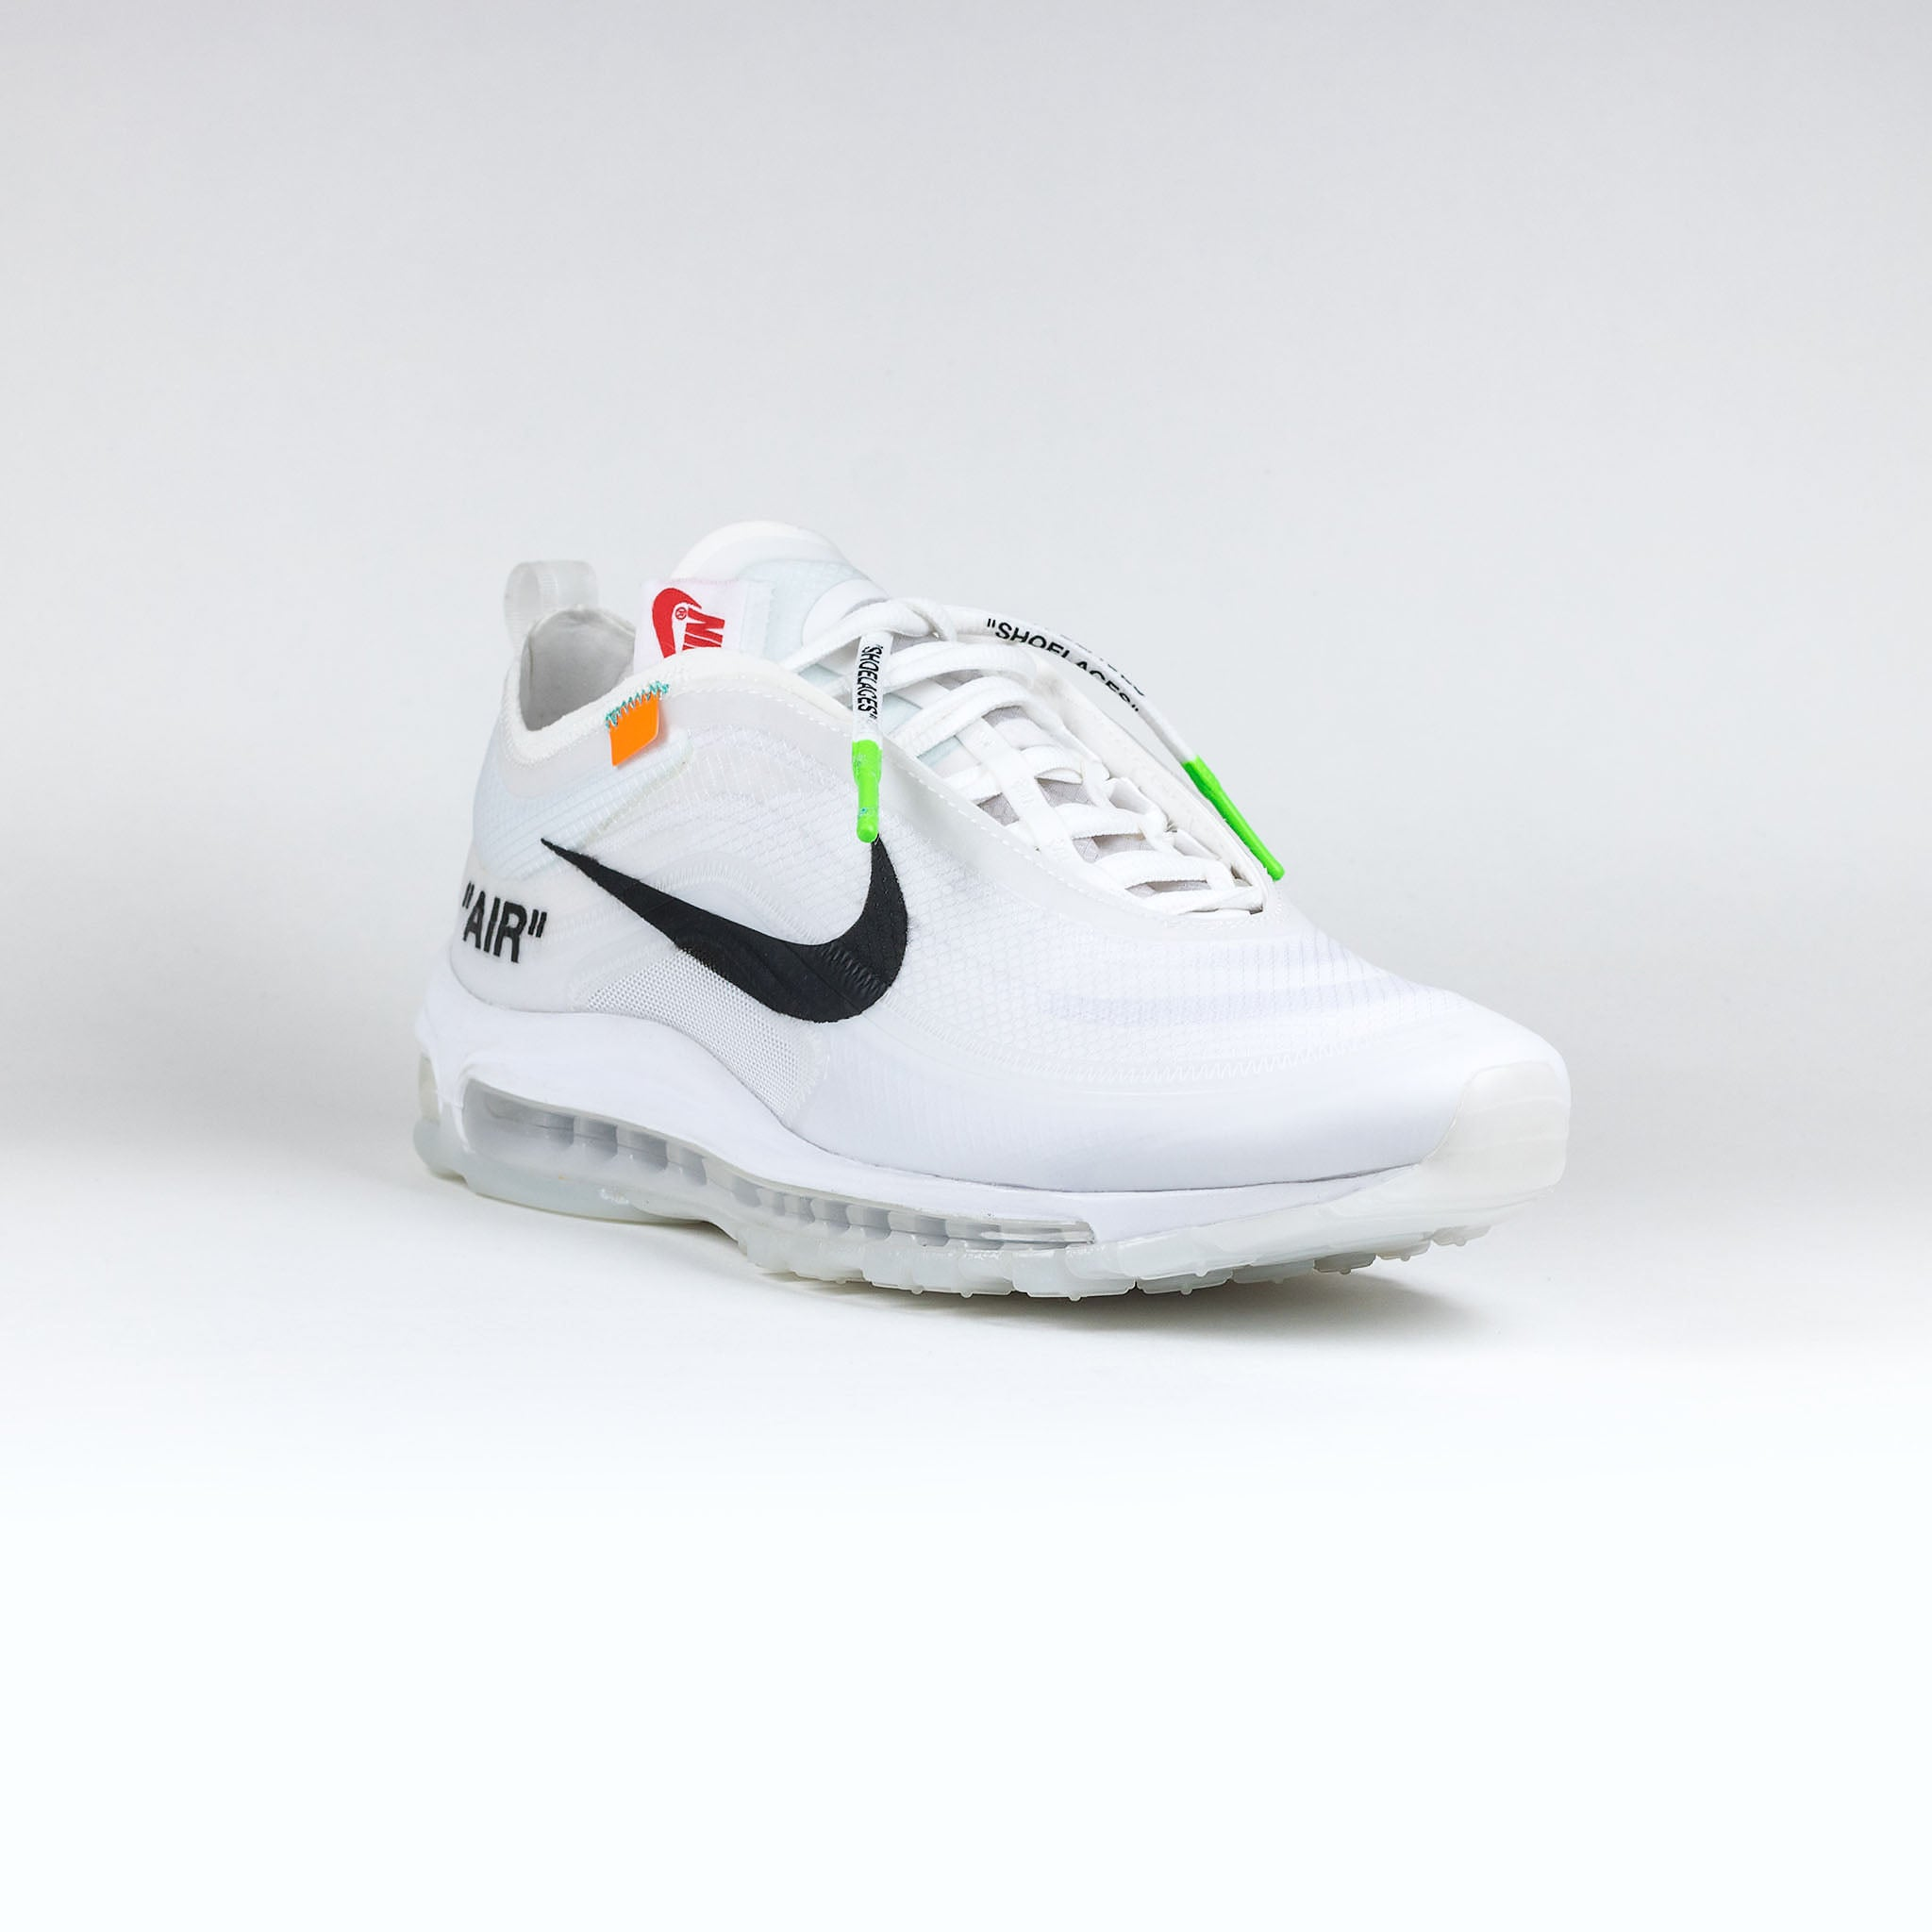 Nike x Off White Air Max 97 OG White – Crepslocker 8e19d436c